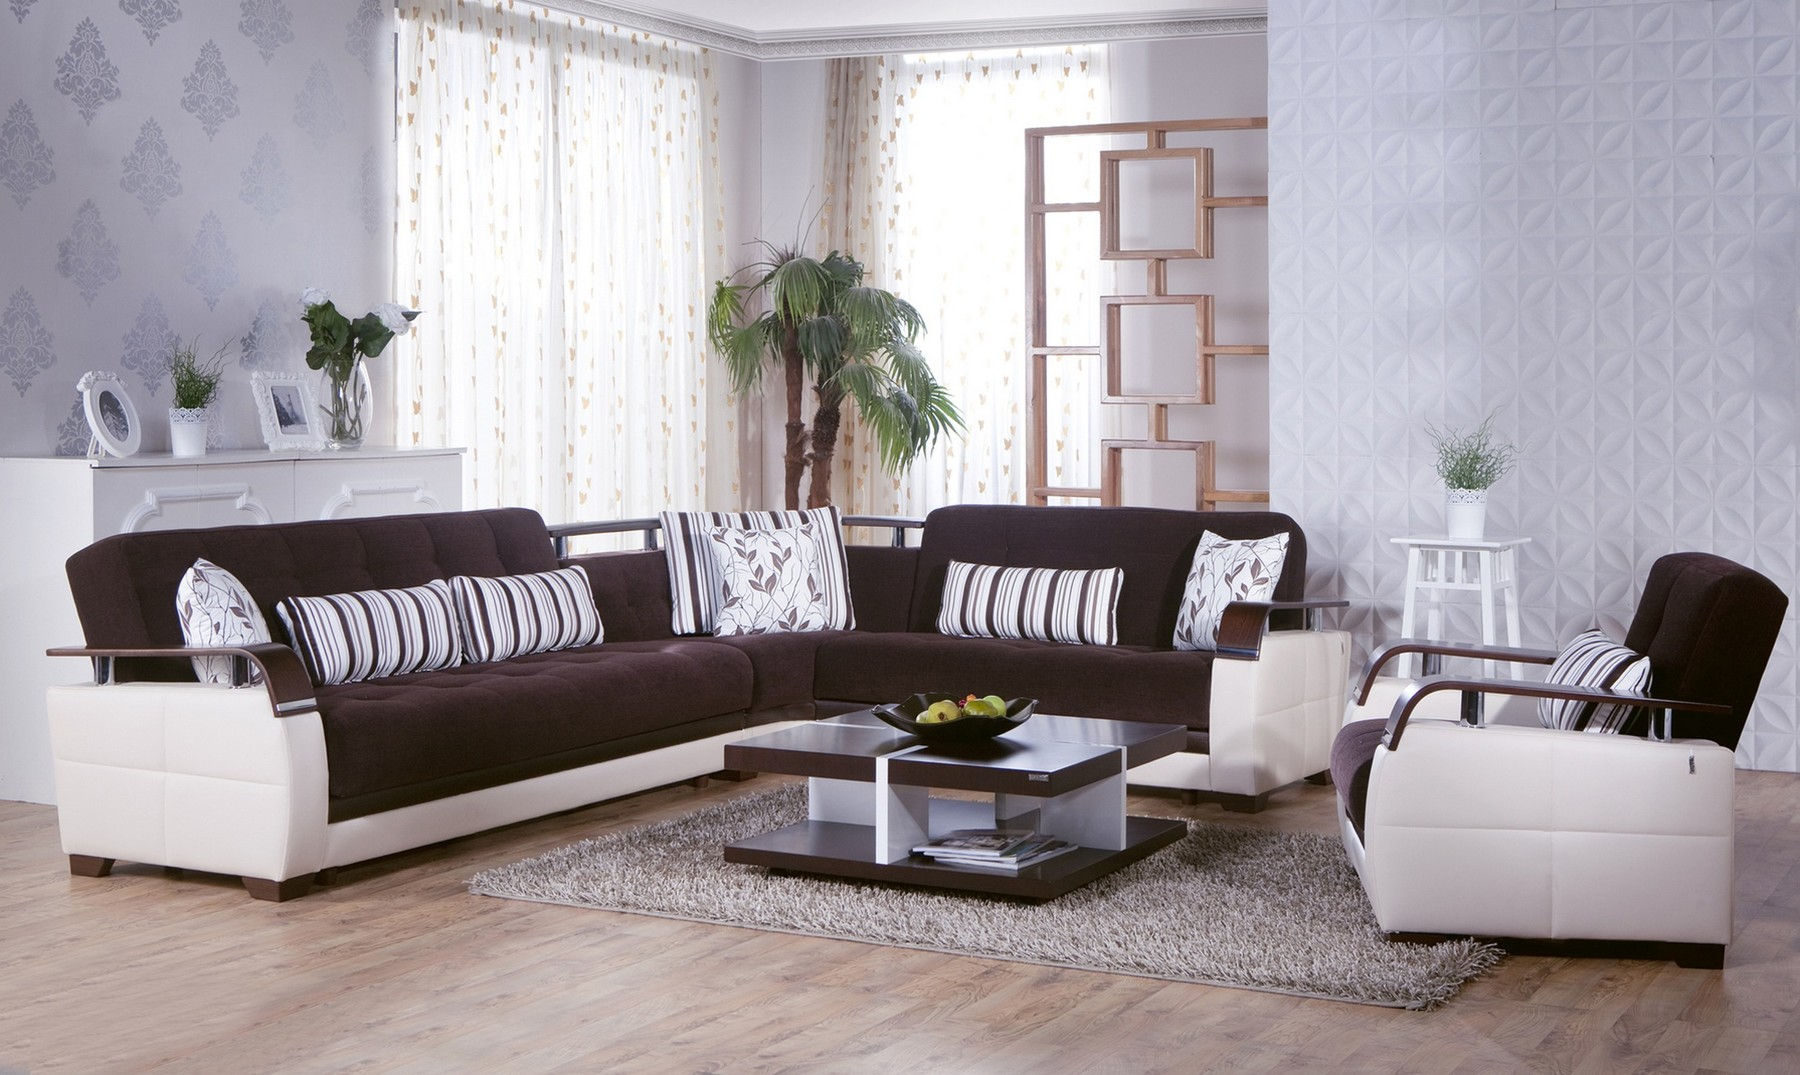 Natural Colins Brown Sectional + Chair